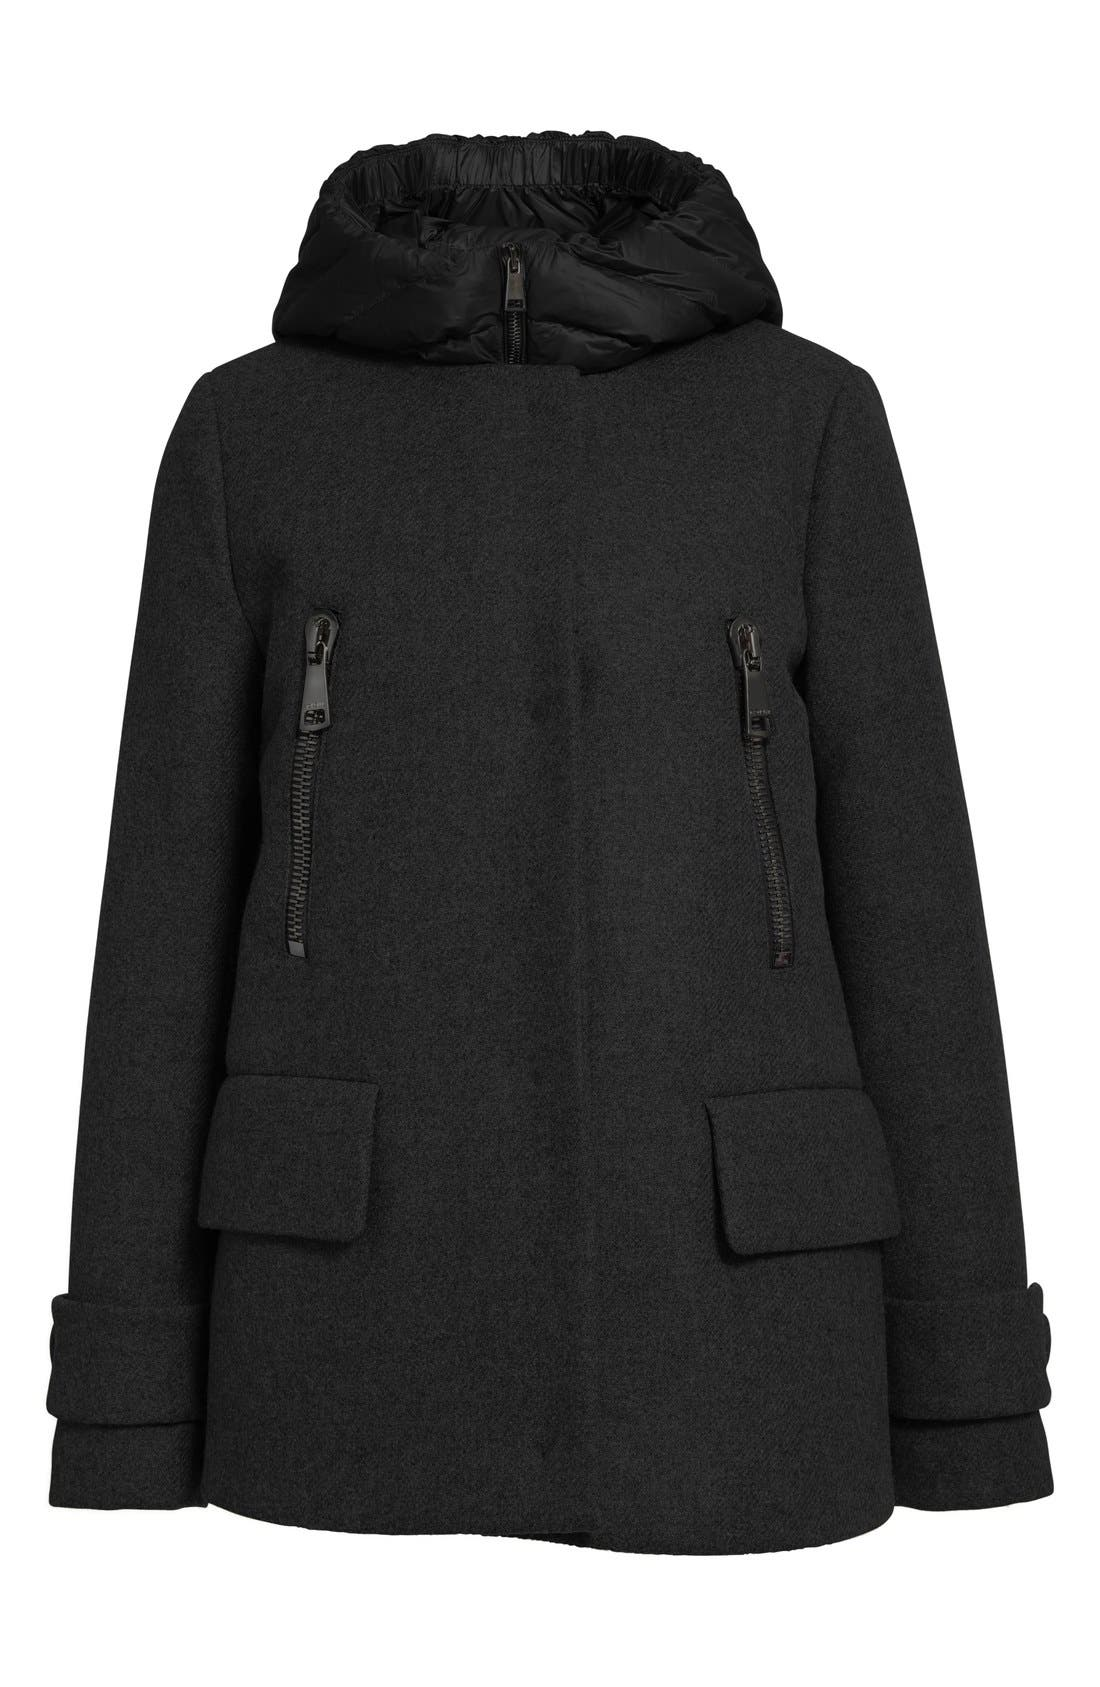 MONCLER,                             'Euphemia' Wool Blend Jacket with Removable Hooded Puffer Vest,                             Alternate thumbnail 5, color,                             001